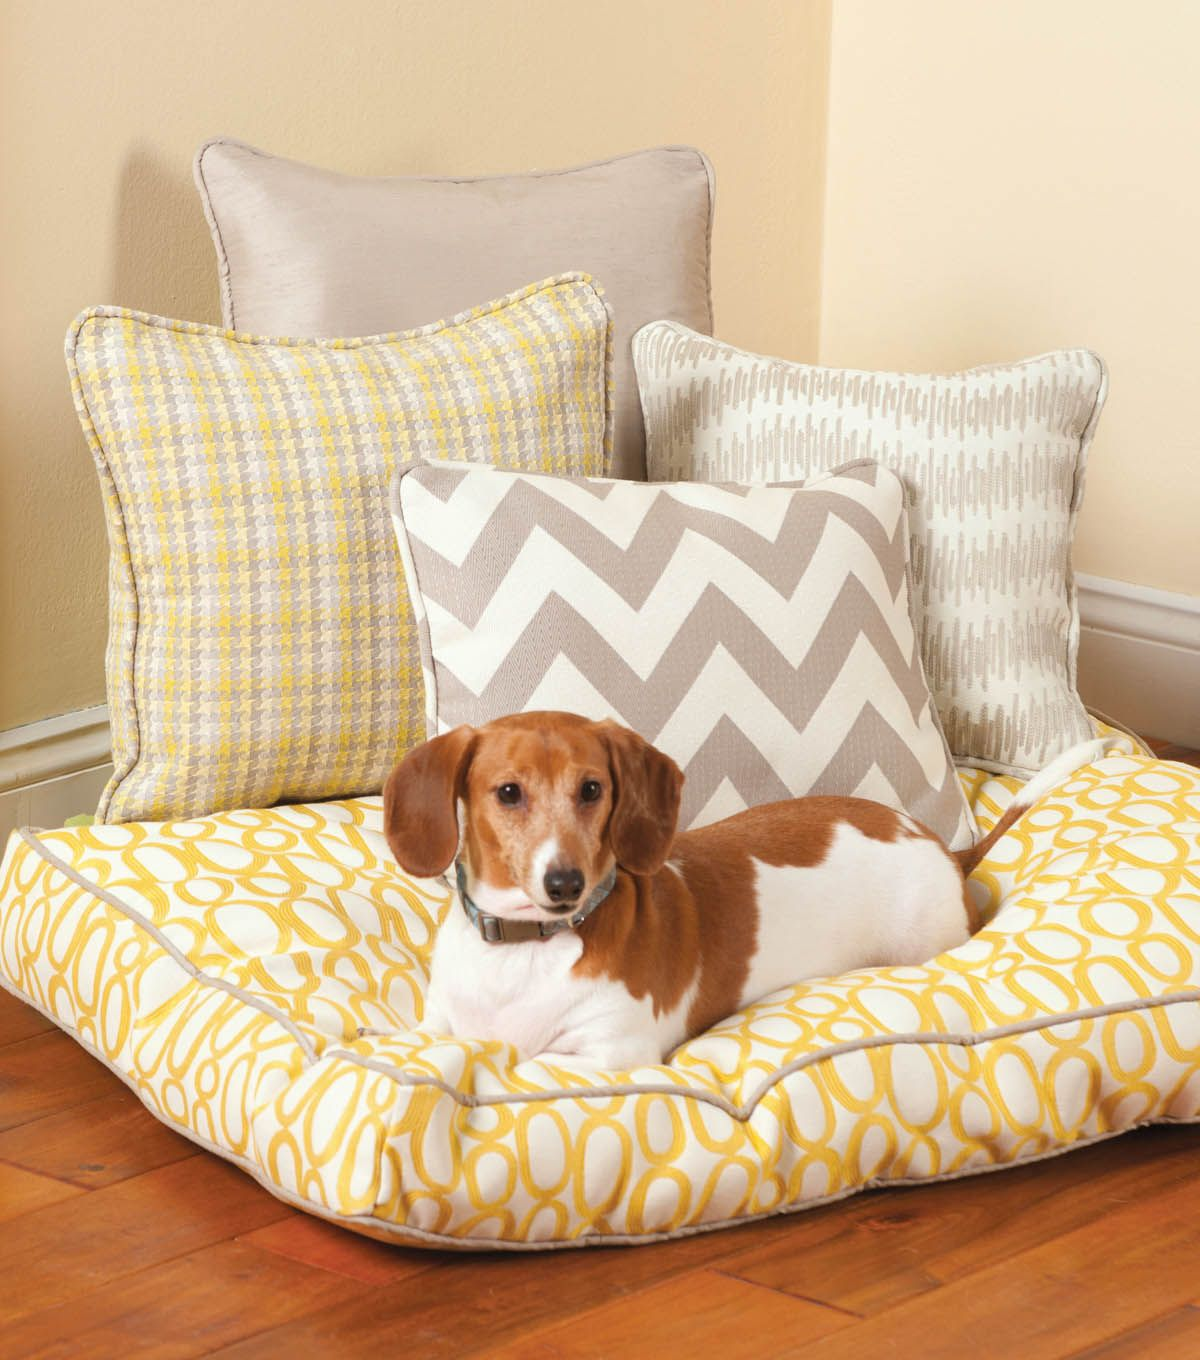 How to Sew a Comfy Dog Bed - Comfy Dog Bed Sewing Pattern | Craft ...